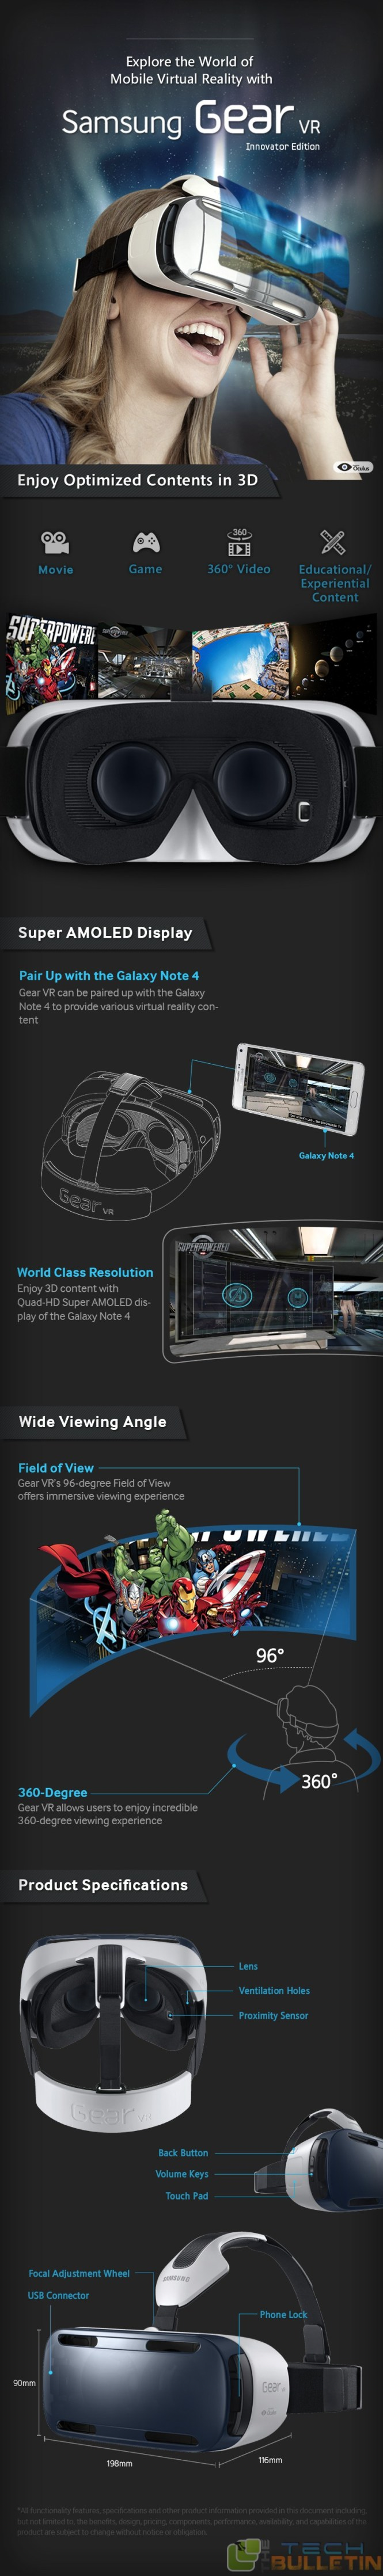 Gear-VR-Infographic